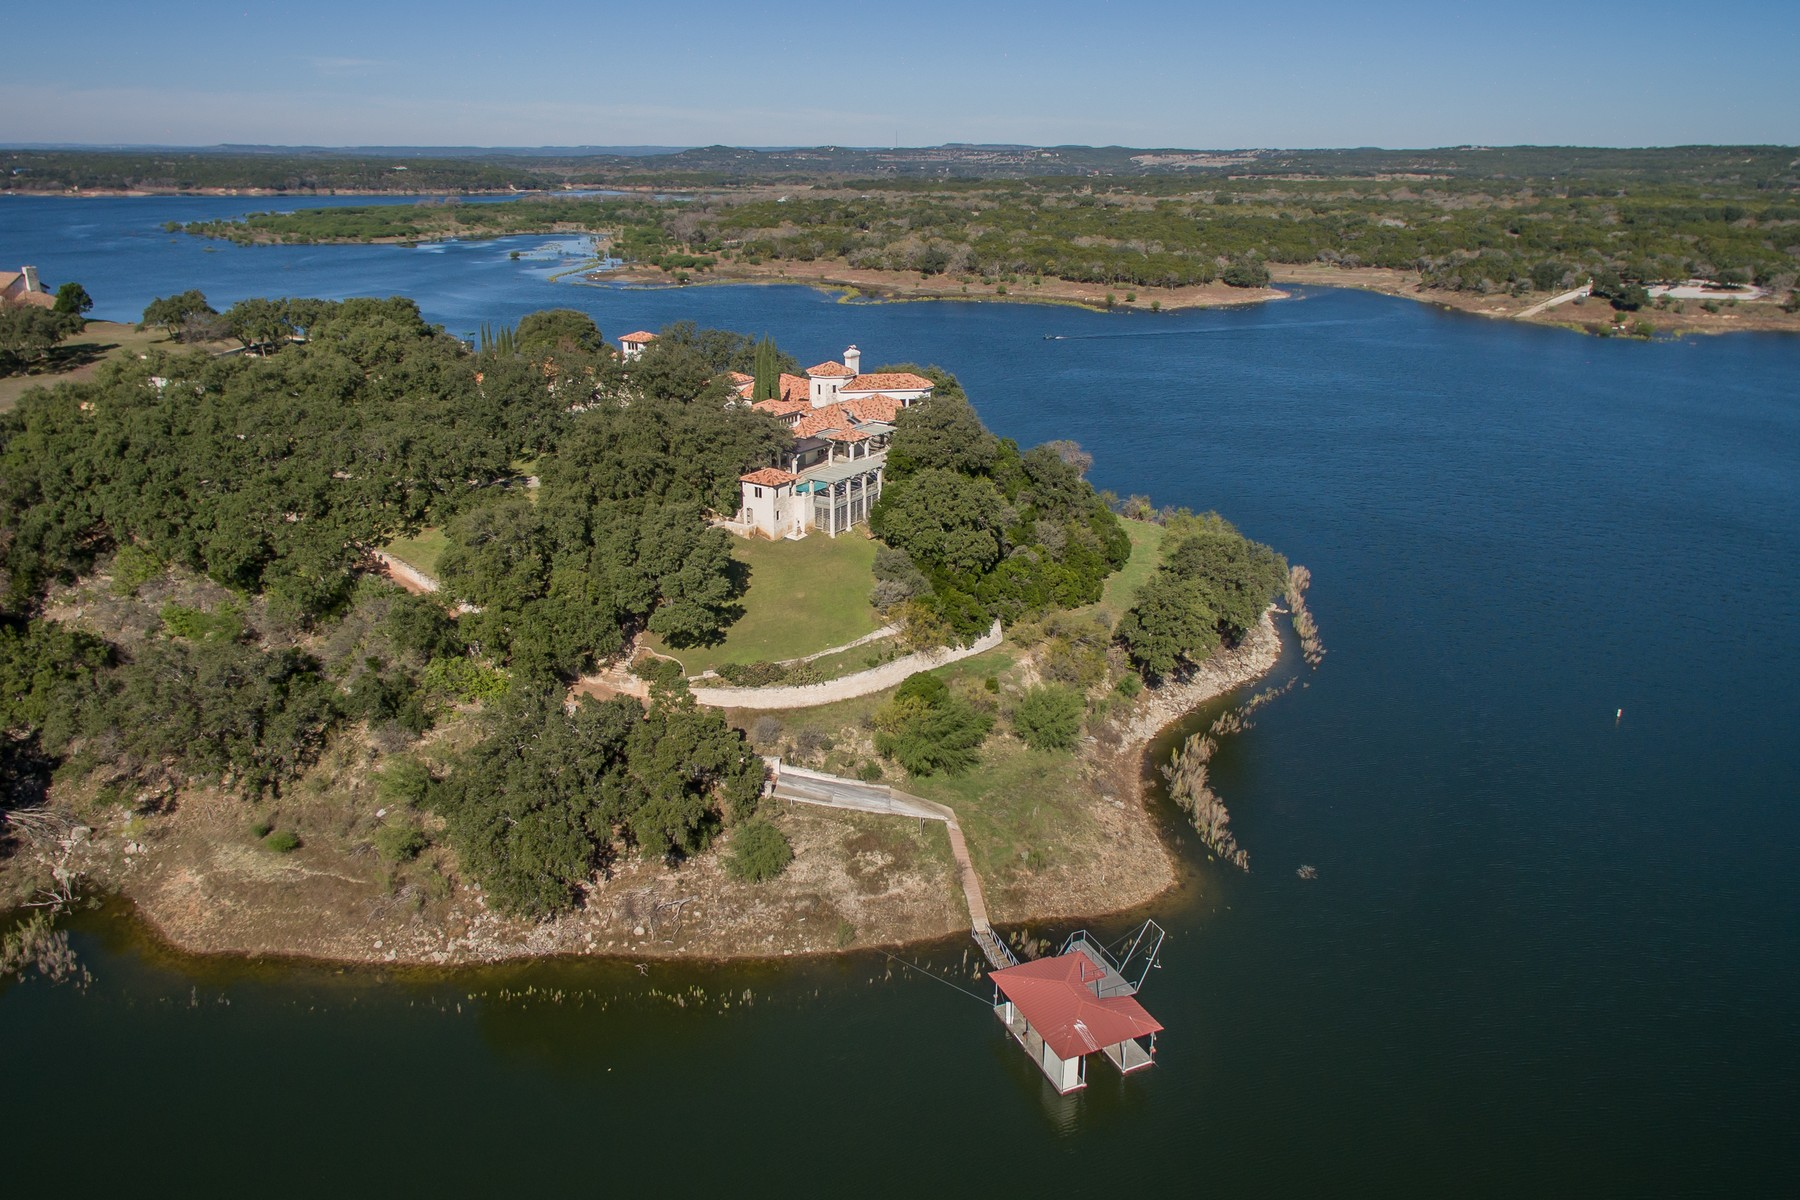 Single Family Home for Sale at Gated Estate on Lake Travis Peninsula 26100 Countryside Dr Spicewood, Texas, 78669 United States